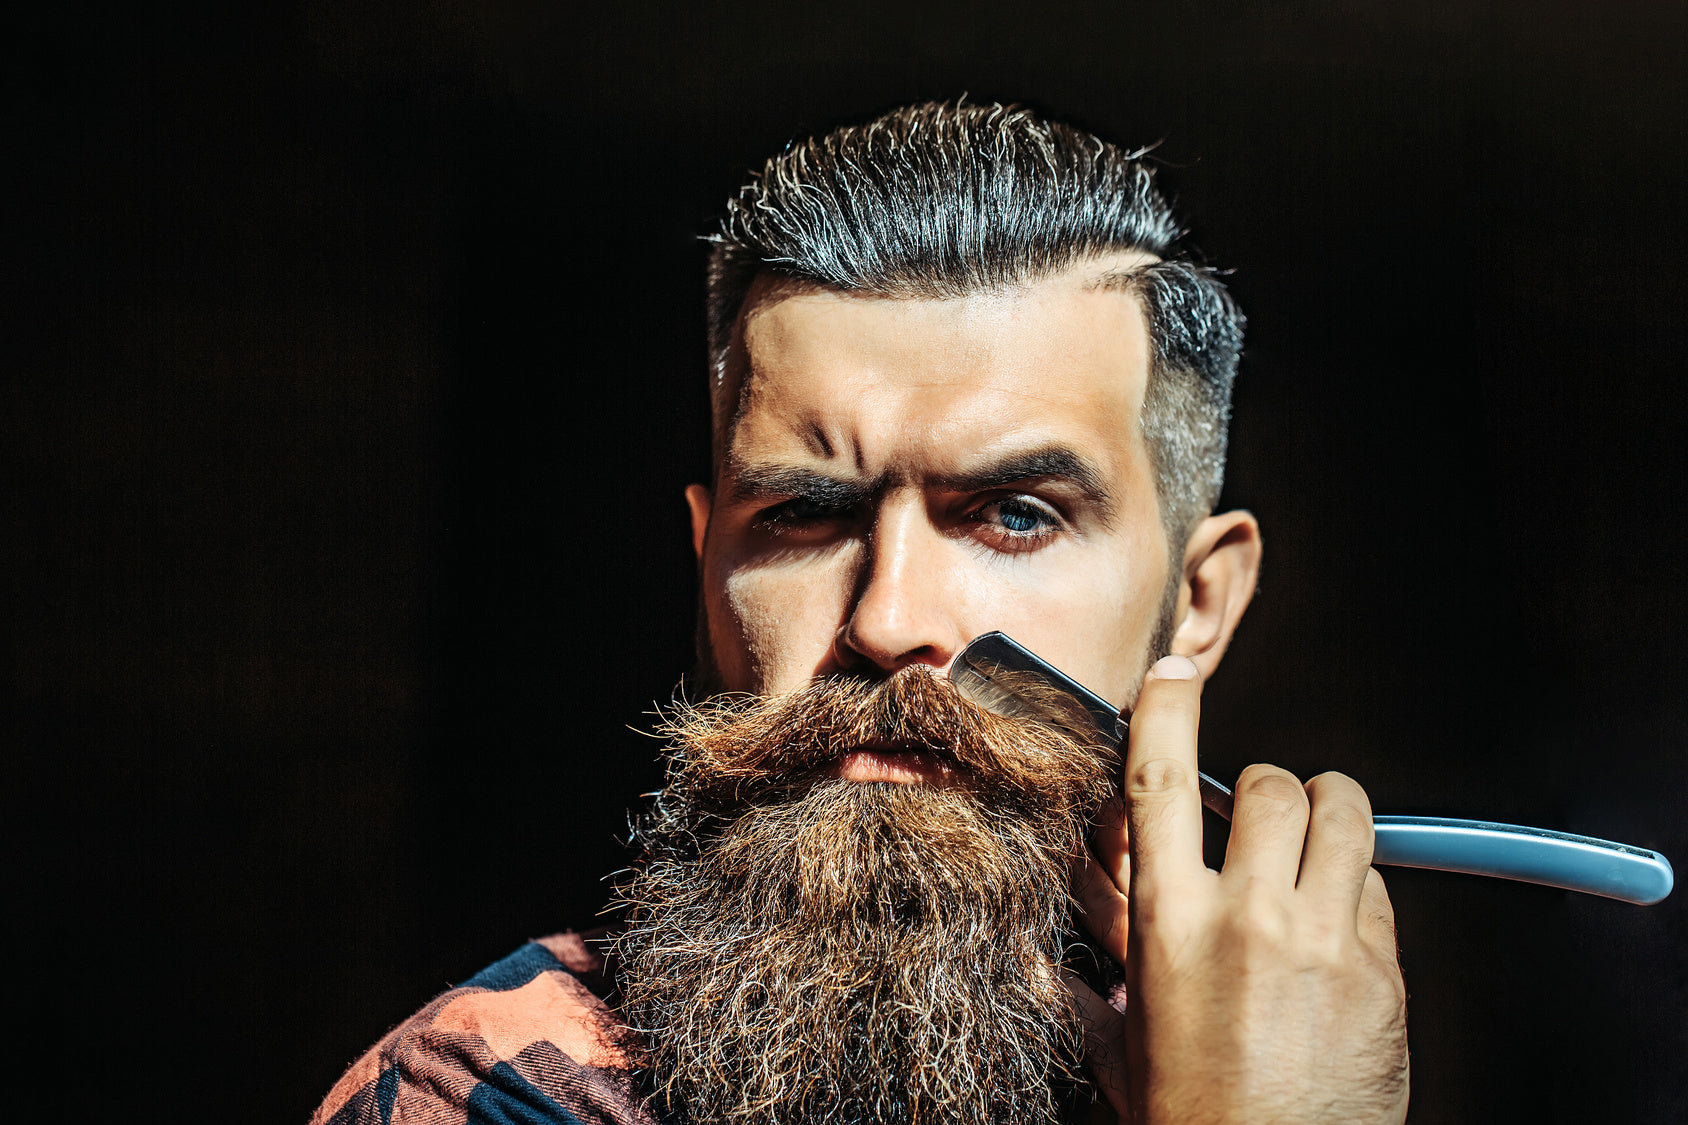 Man with epic beard - This is how to grow a beard